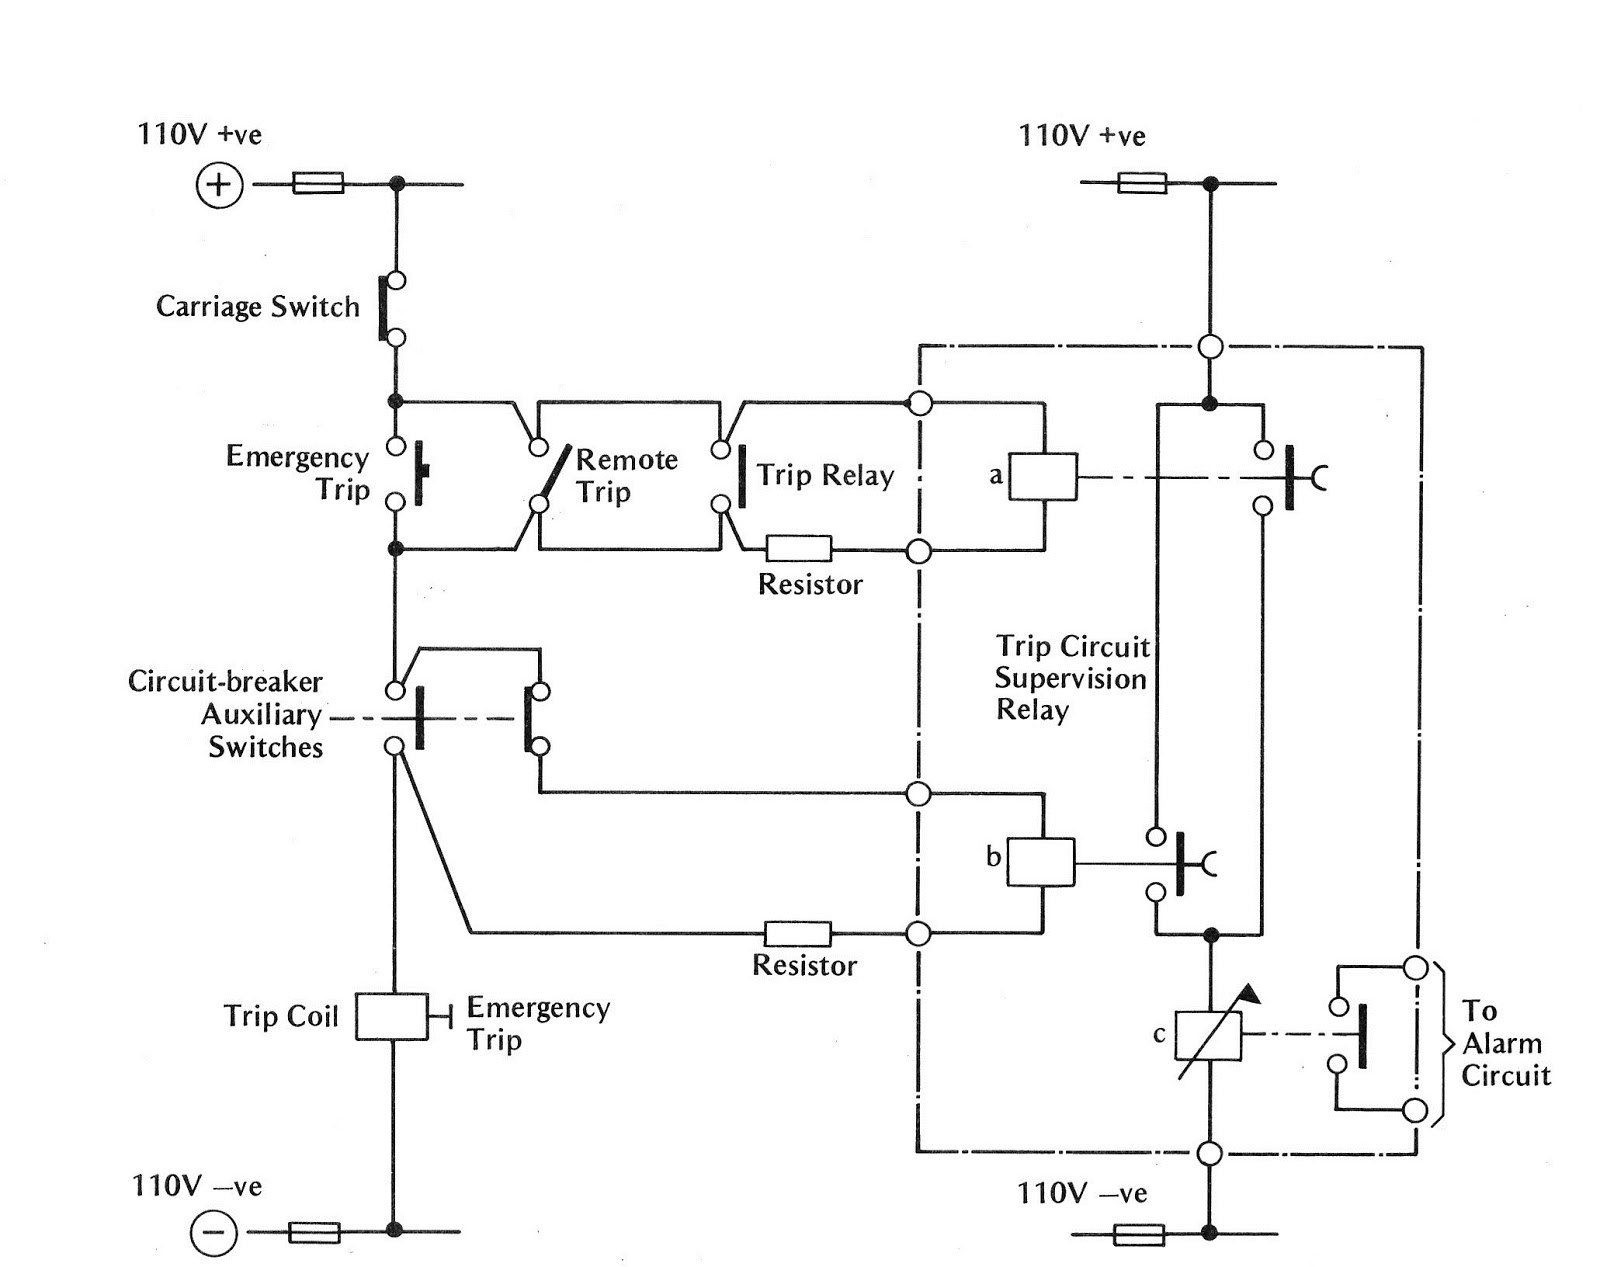 220v Wiring Diagram New Delighted 220v Gfci Breaker Wiring Diagram Electrical and